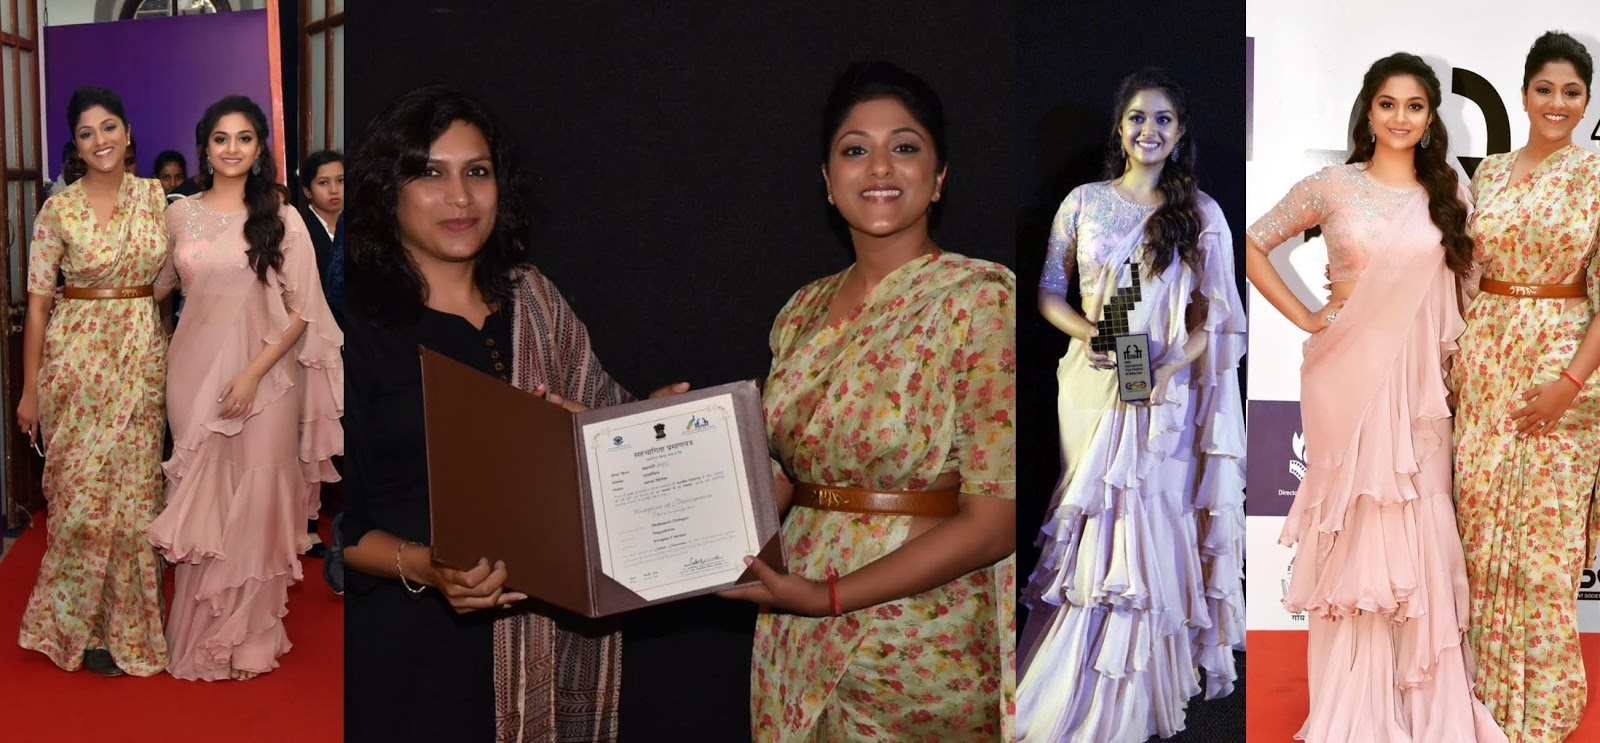 Mahanati screened in the Indian Panorama category at the 49th edition of the International Film Festival of India